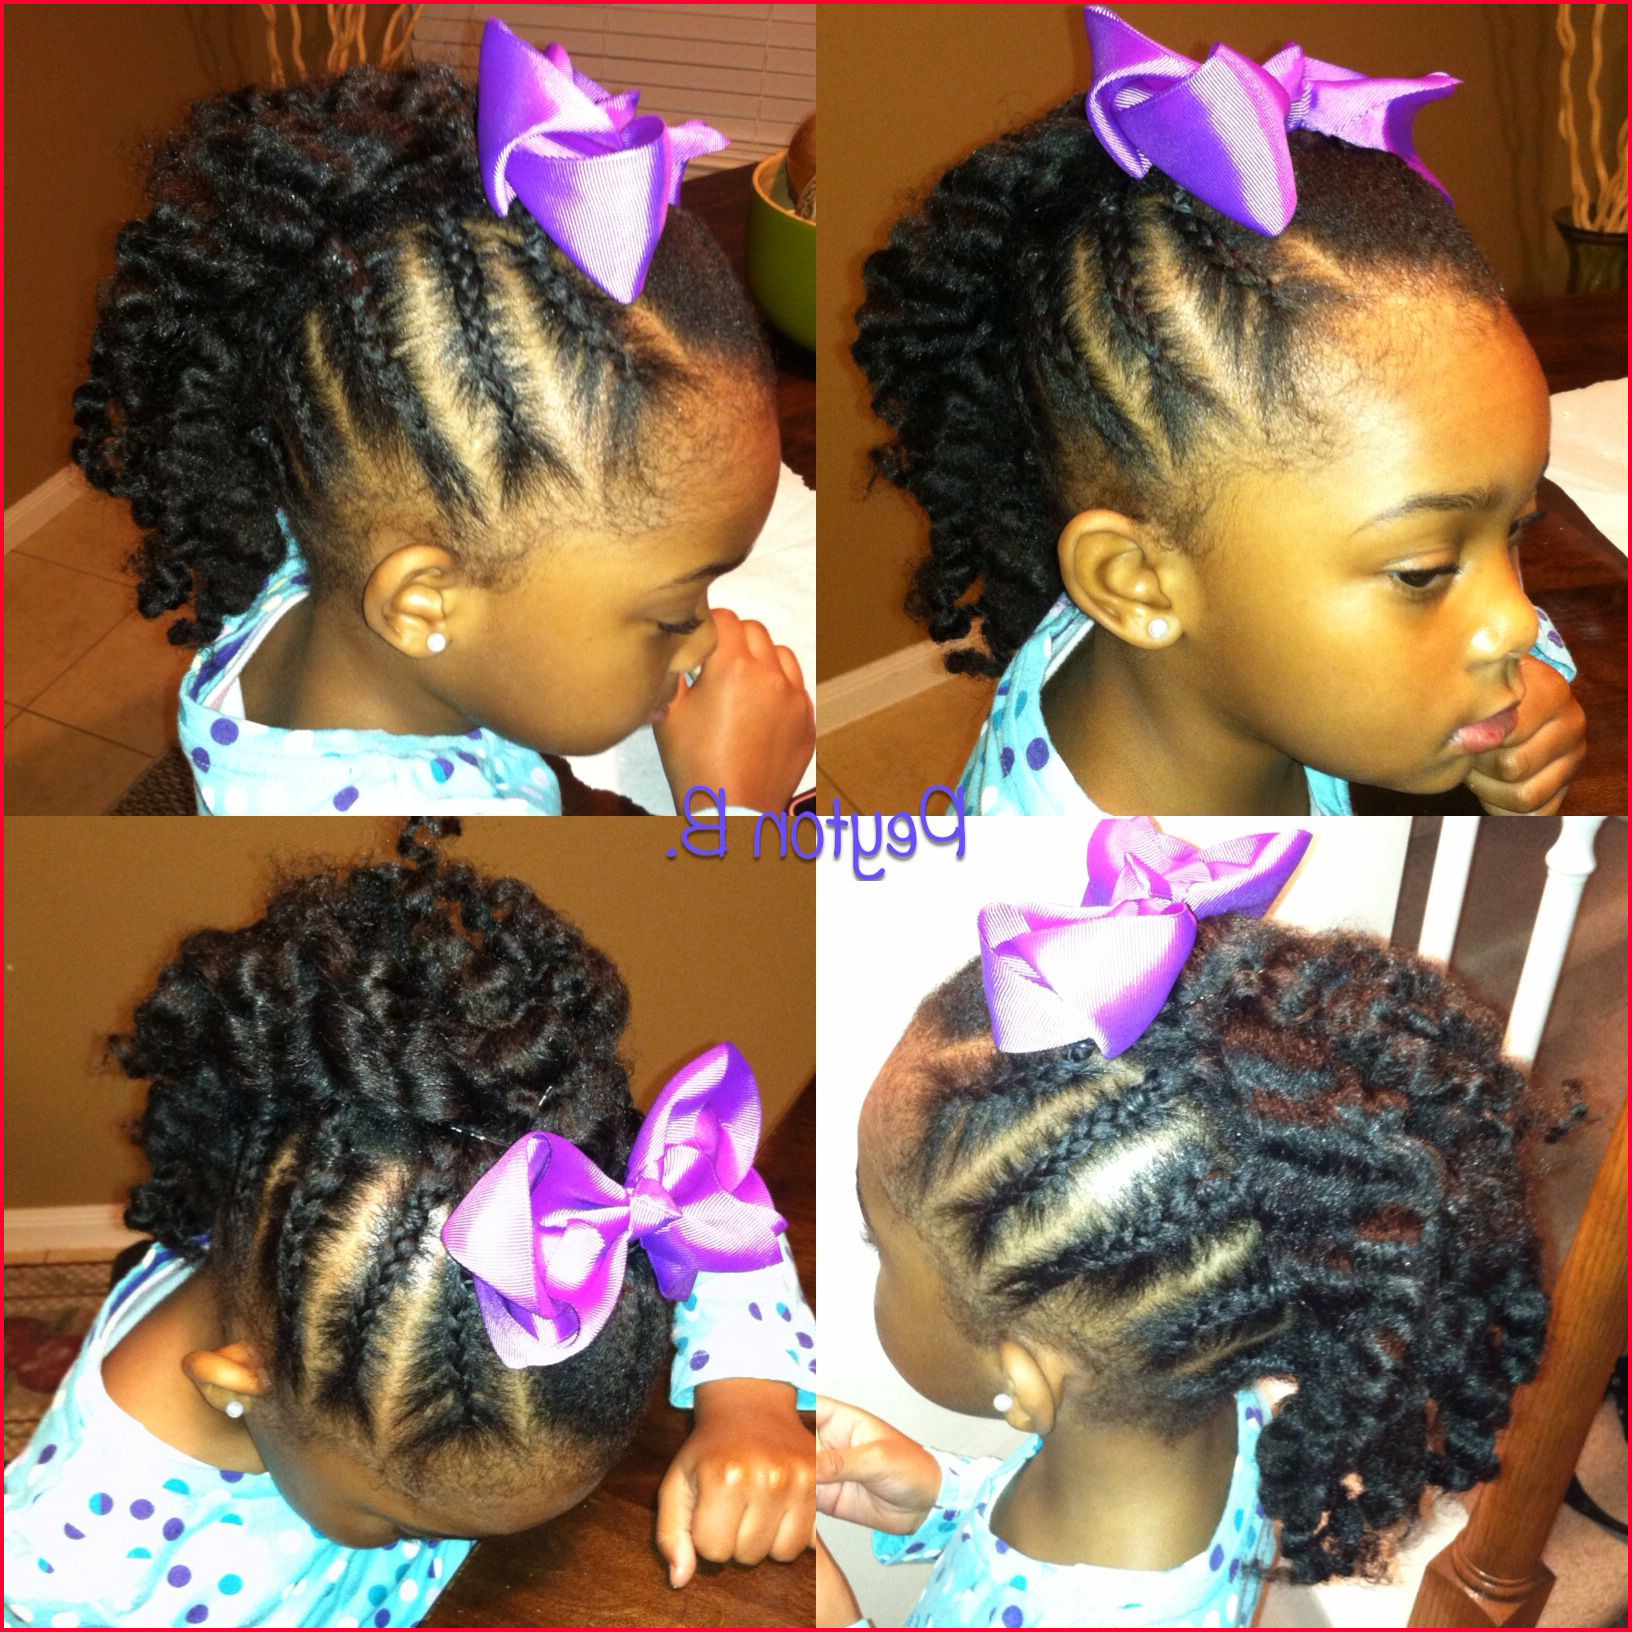 Beautiful Natural Mohawk Hairstyles Photos Of Braided Intended For Most Current Braided Frohawk Hairstyles (View 2 of 20)